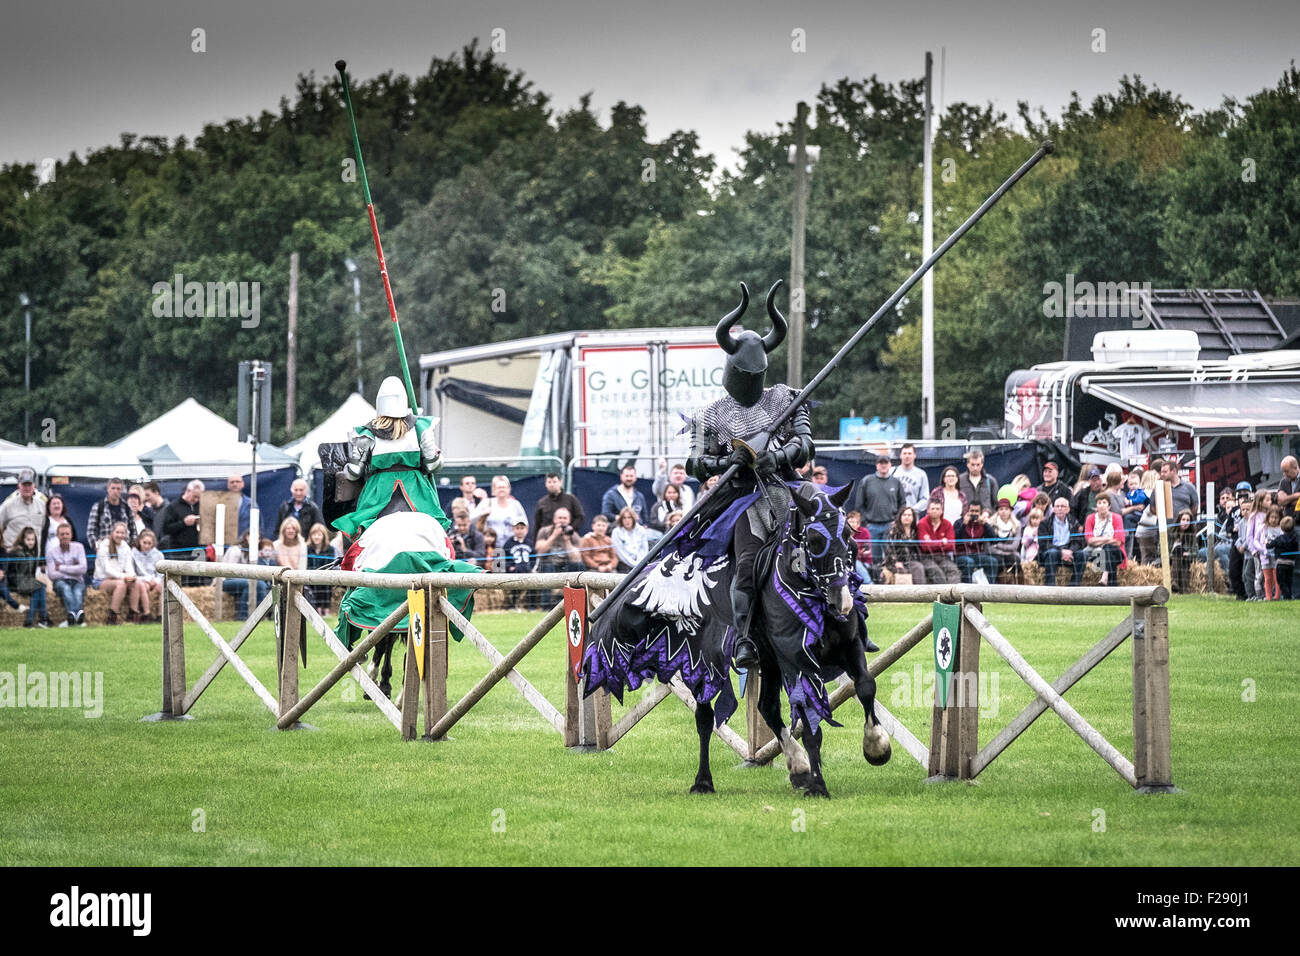 Knights of the Damned jousting in a tournament at the Essex Country Show, Barleylands, Essex. - Stock Image